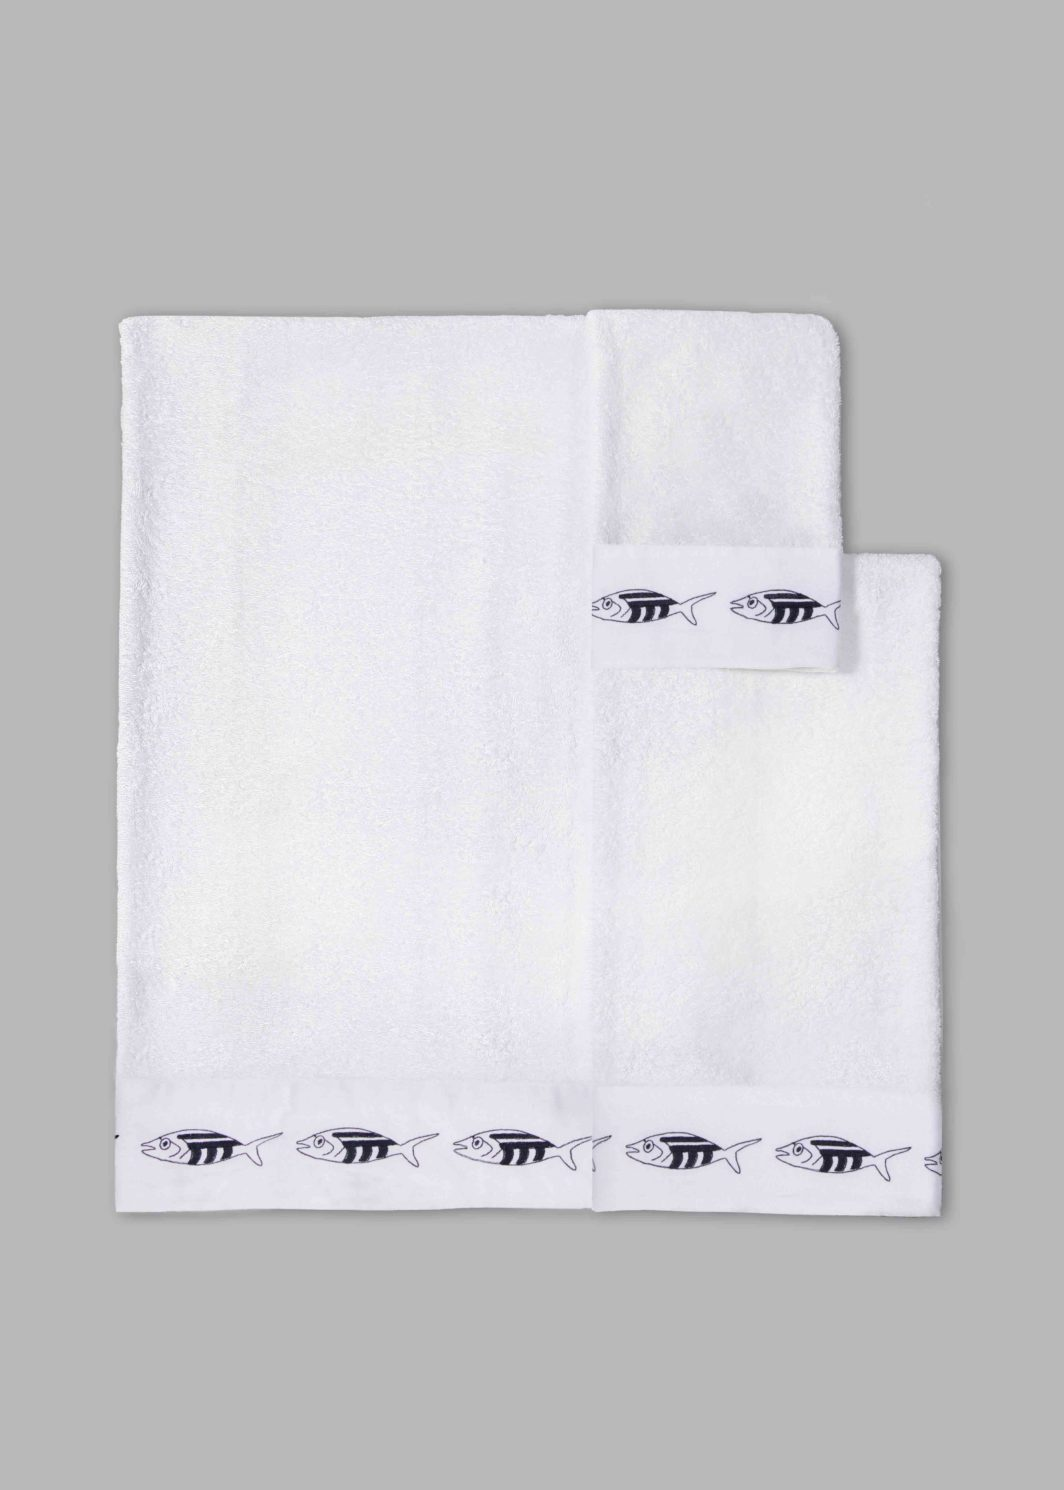 BARRACUDA BATH TOWELS SET